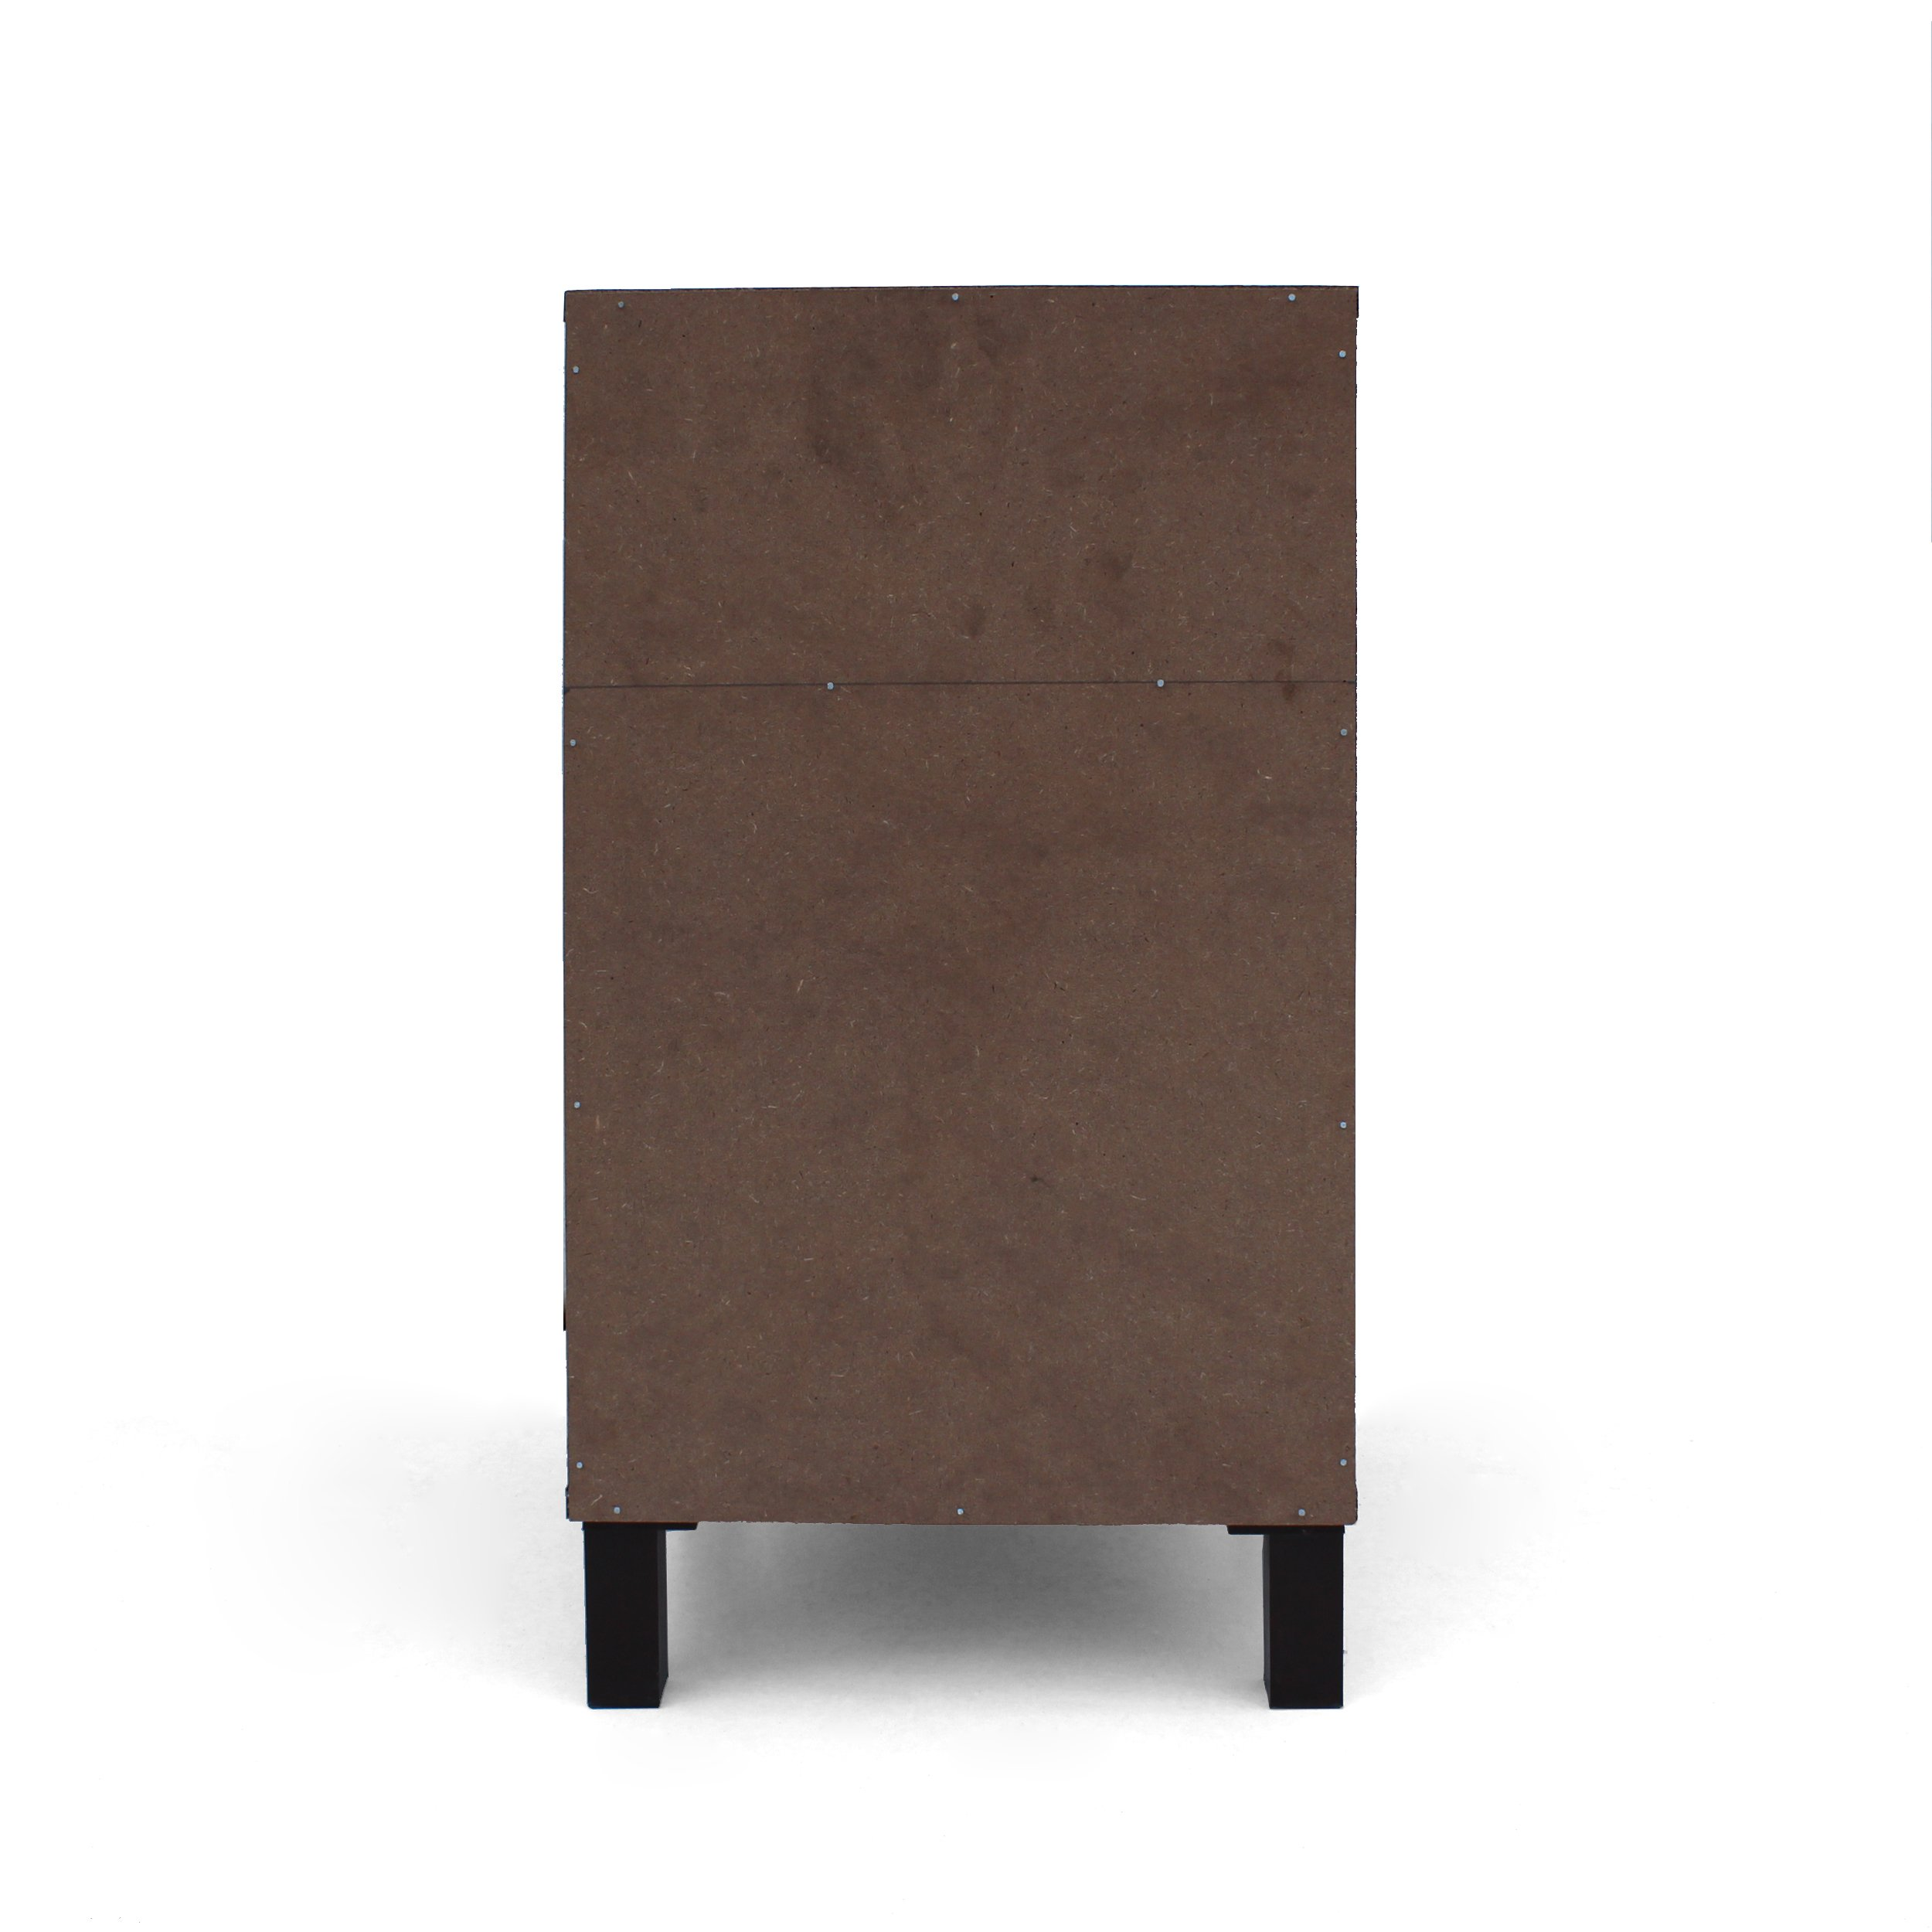 Christopher Knight Home 303655 Linnea Wood Cabinet, Walnut/Sanremo Oak/Brown by Christopher Knight Home (Image #7)